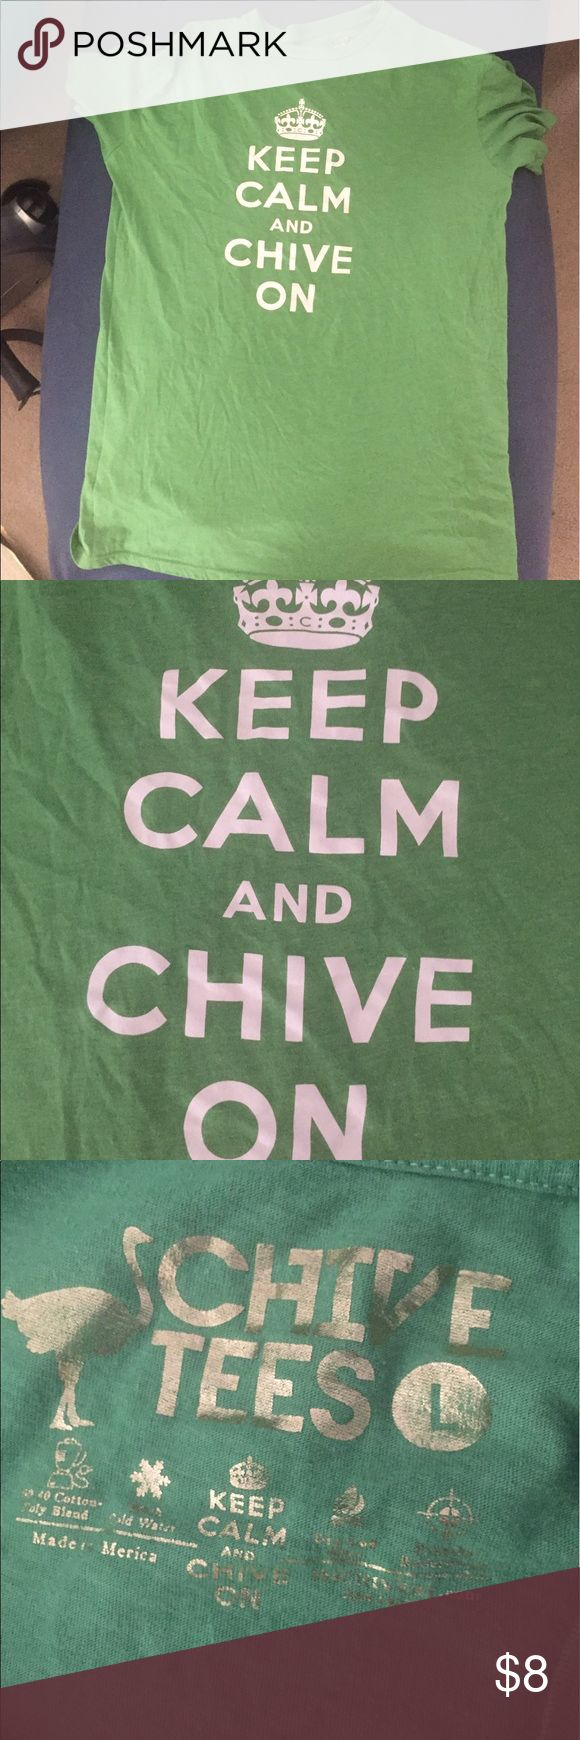 ❇️ Men's KCCO Chive Shirt Lightweight tee size L advertising The Chive - Keep Calm and Chive On (KCCO.) Smoke/pet free as always. Worn once or twice. Accepting reasonable offers on all items in my closet. Bundle and save! Shirts Tees - Short Sleeve